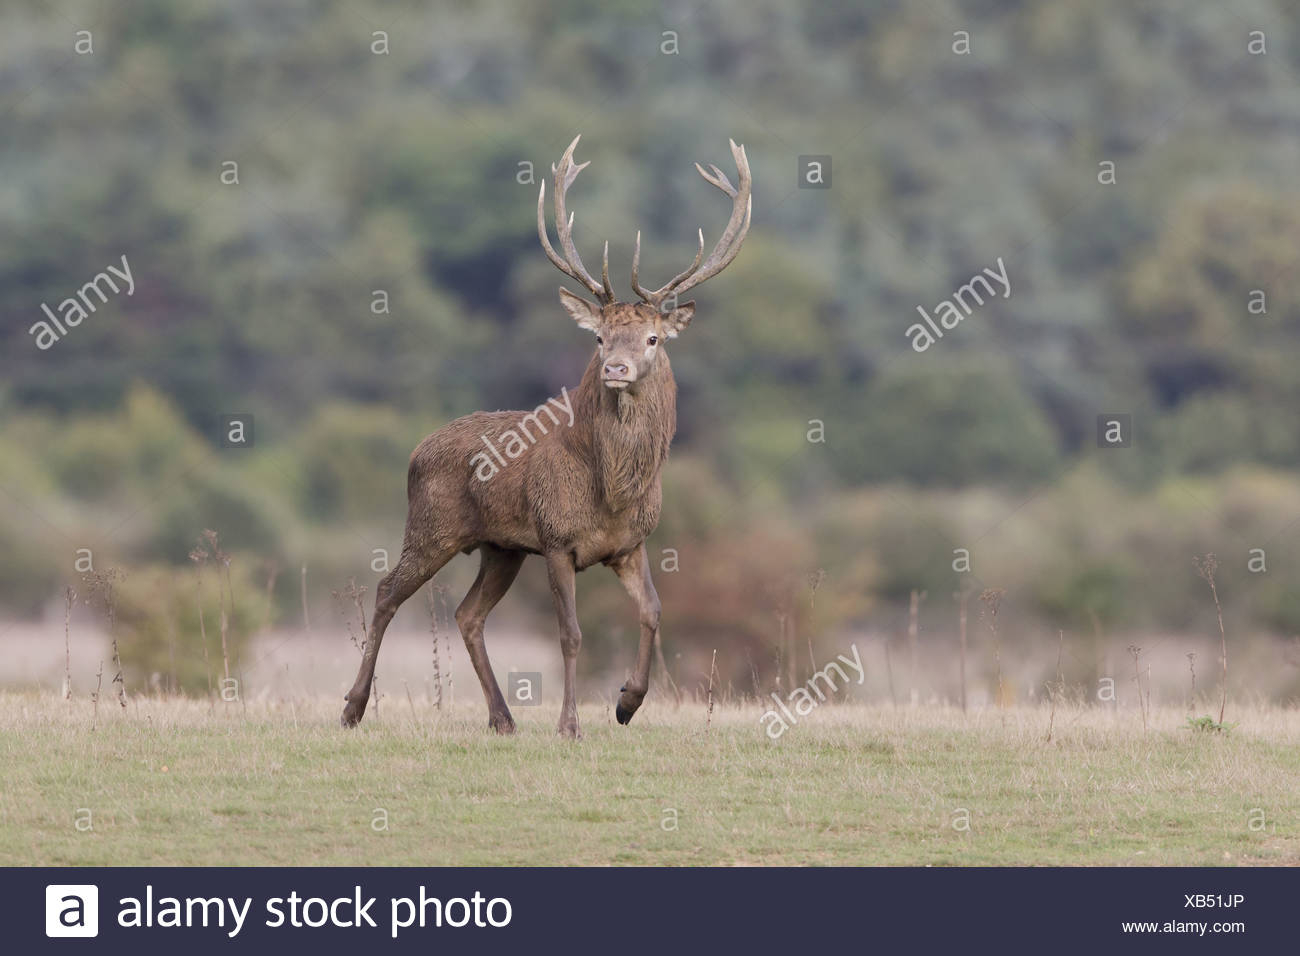 Red Deer Rut Minsmere High Resolution Stock Photography And within Deer Rut Westleton 2021